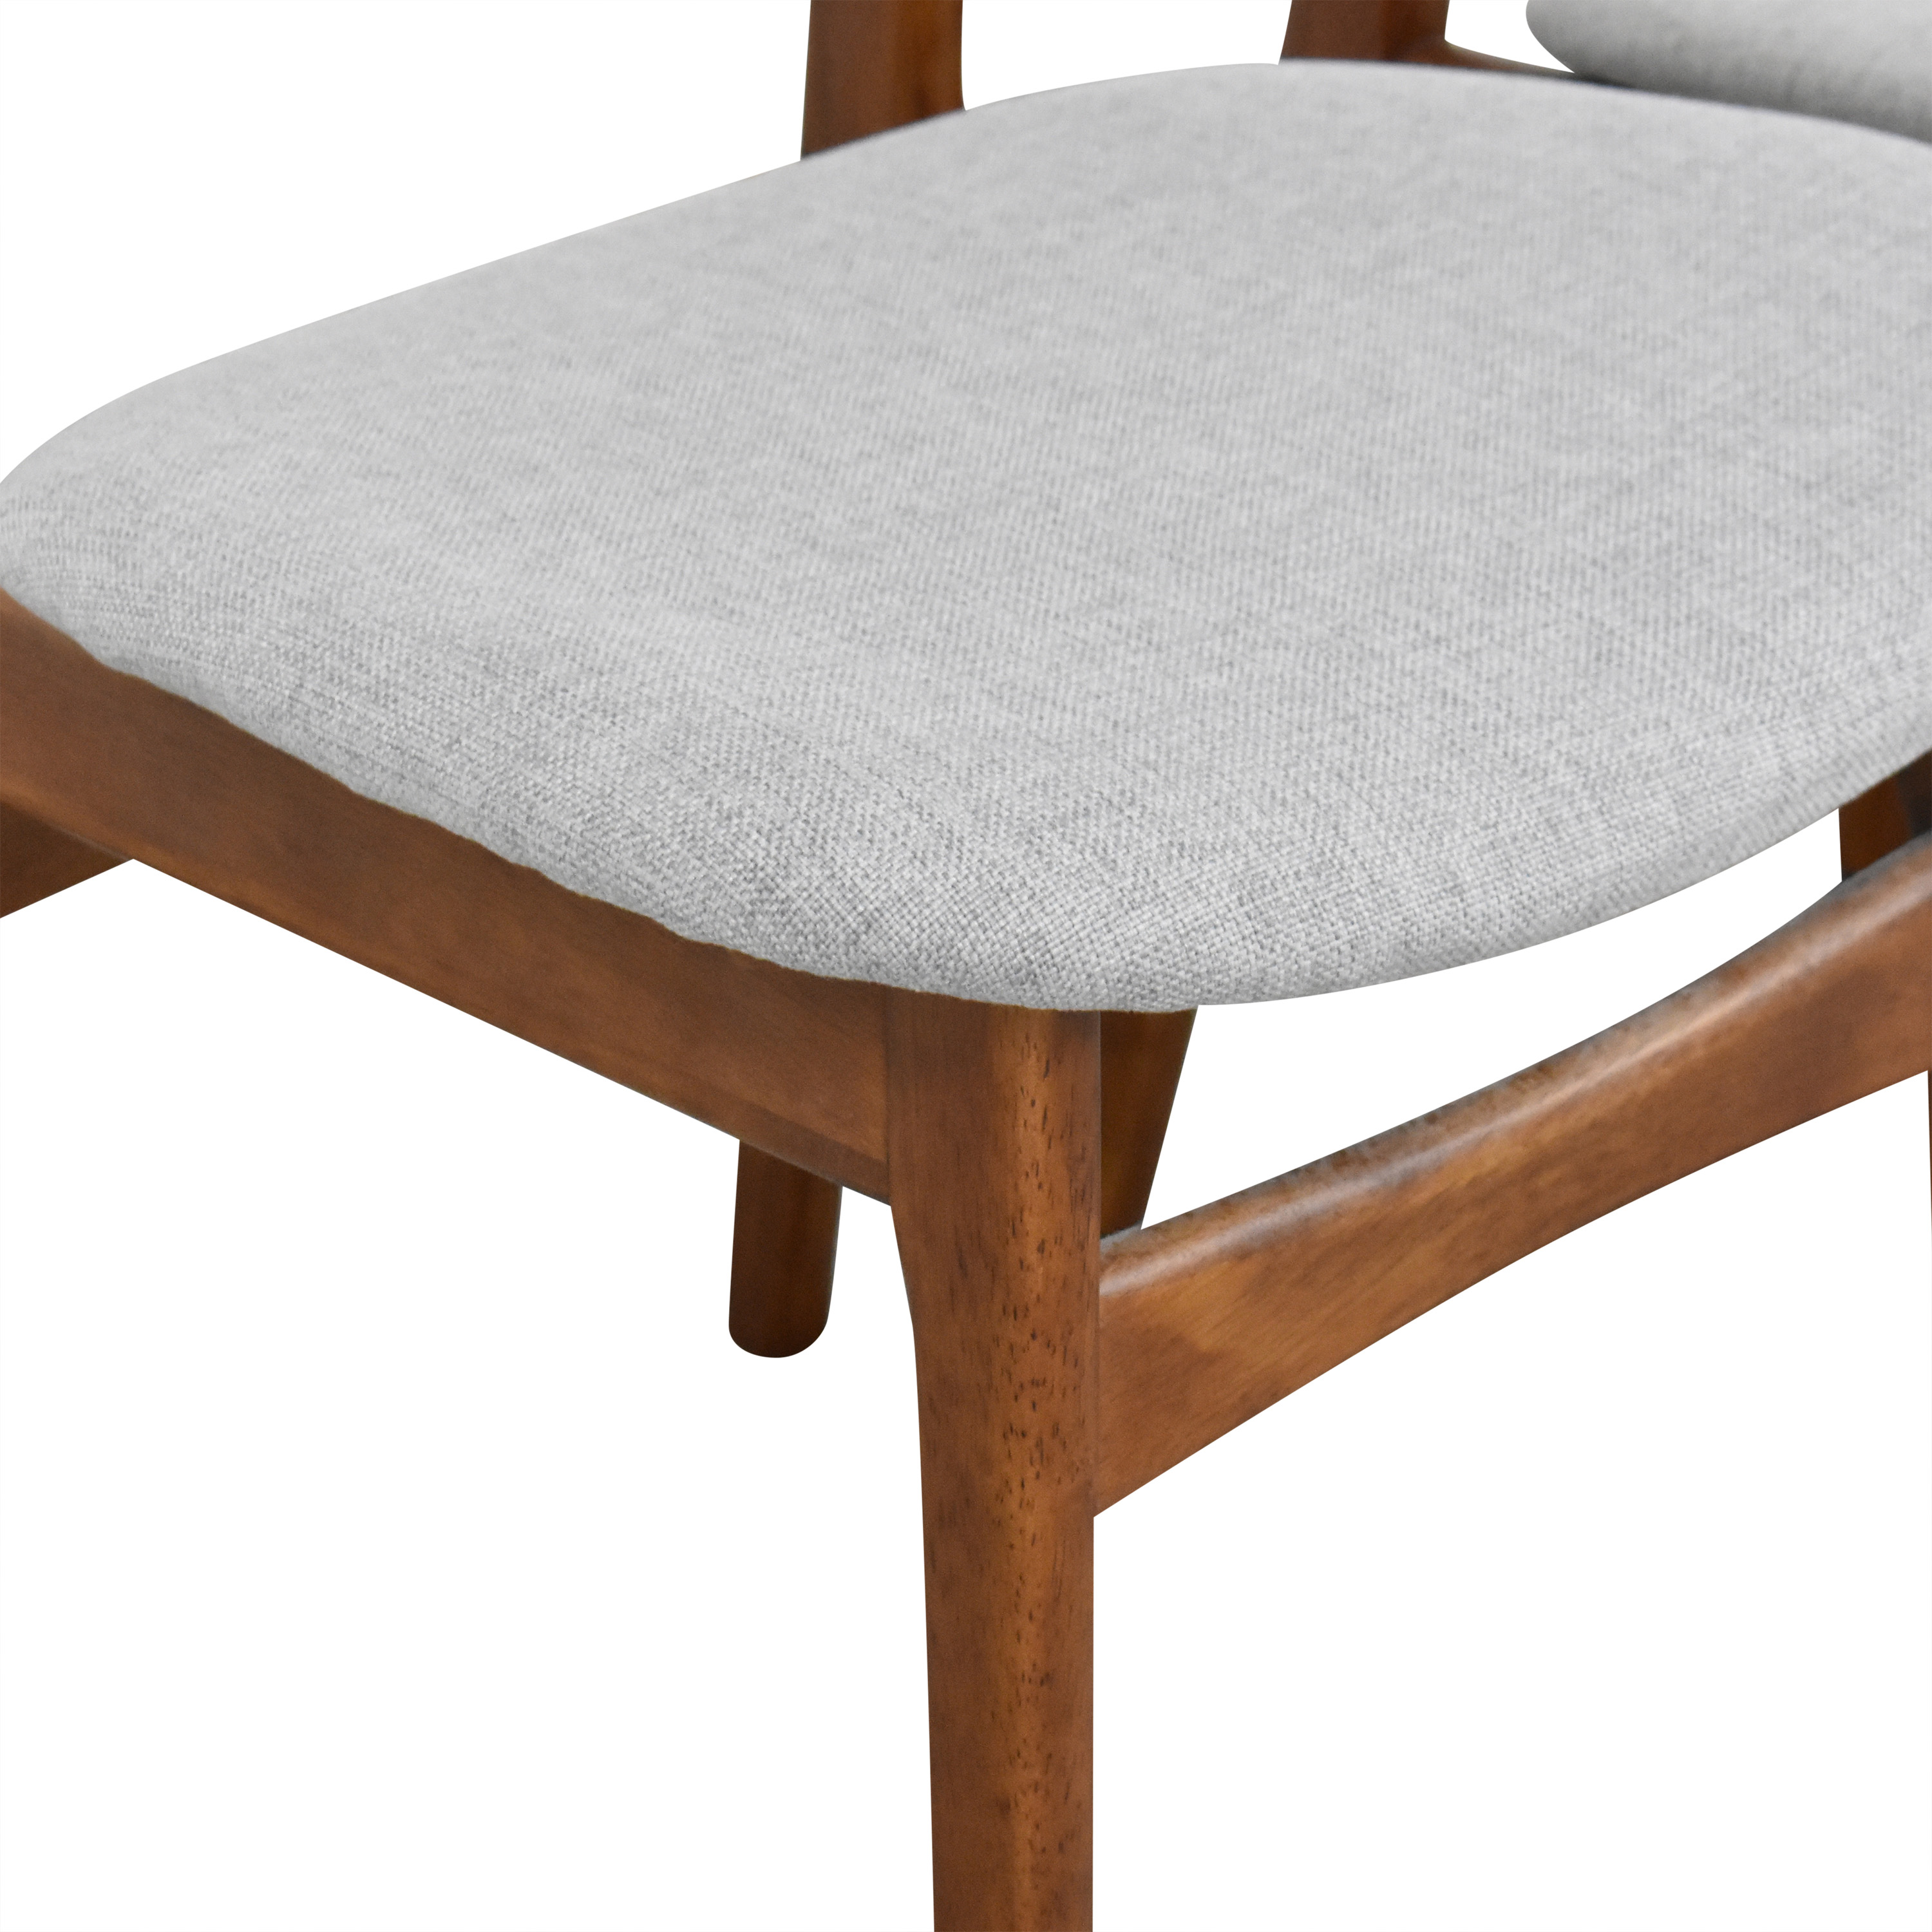 West Elm Classic Cafe Upholstered Dining Chairs sale